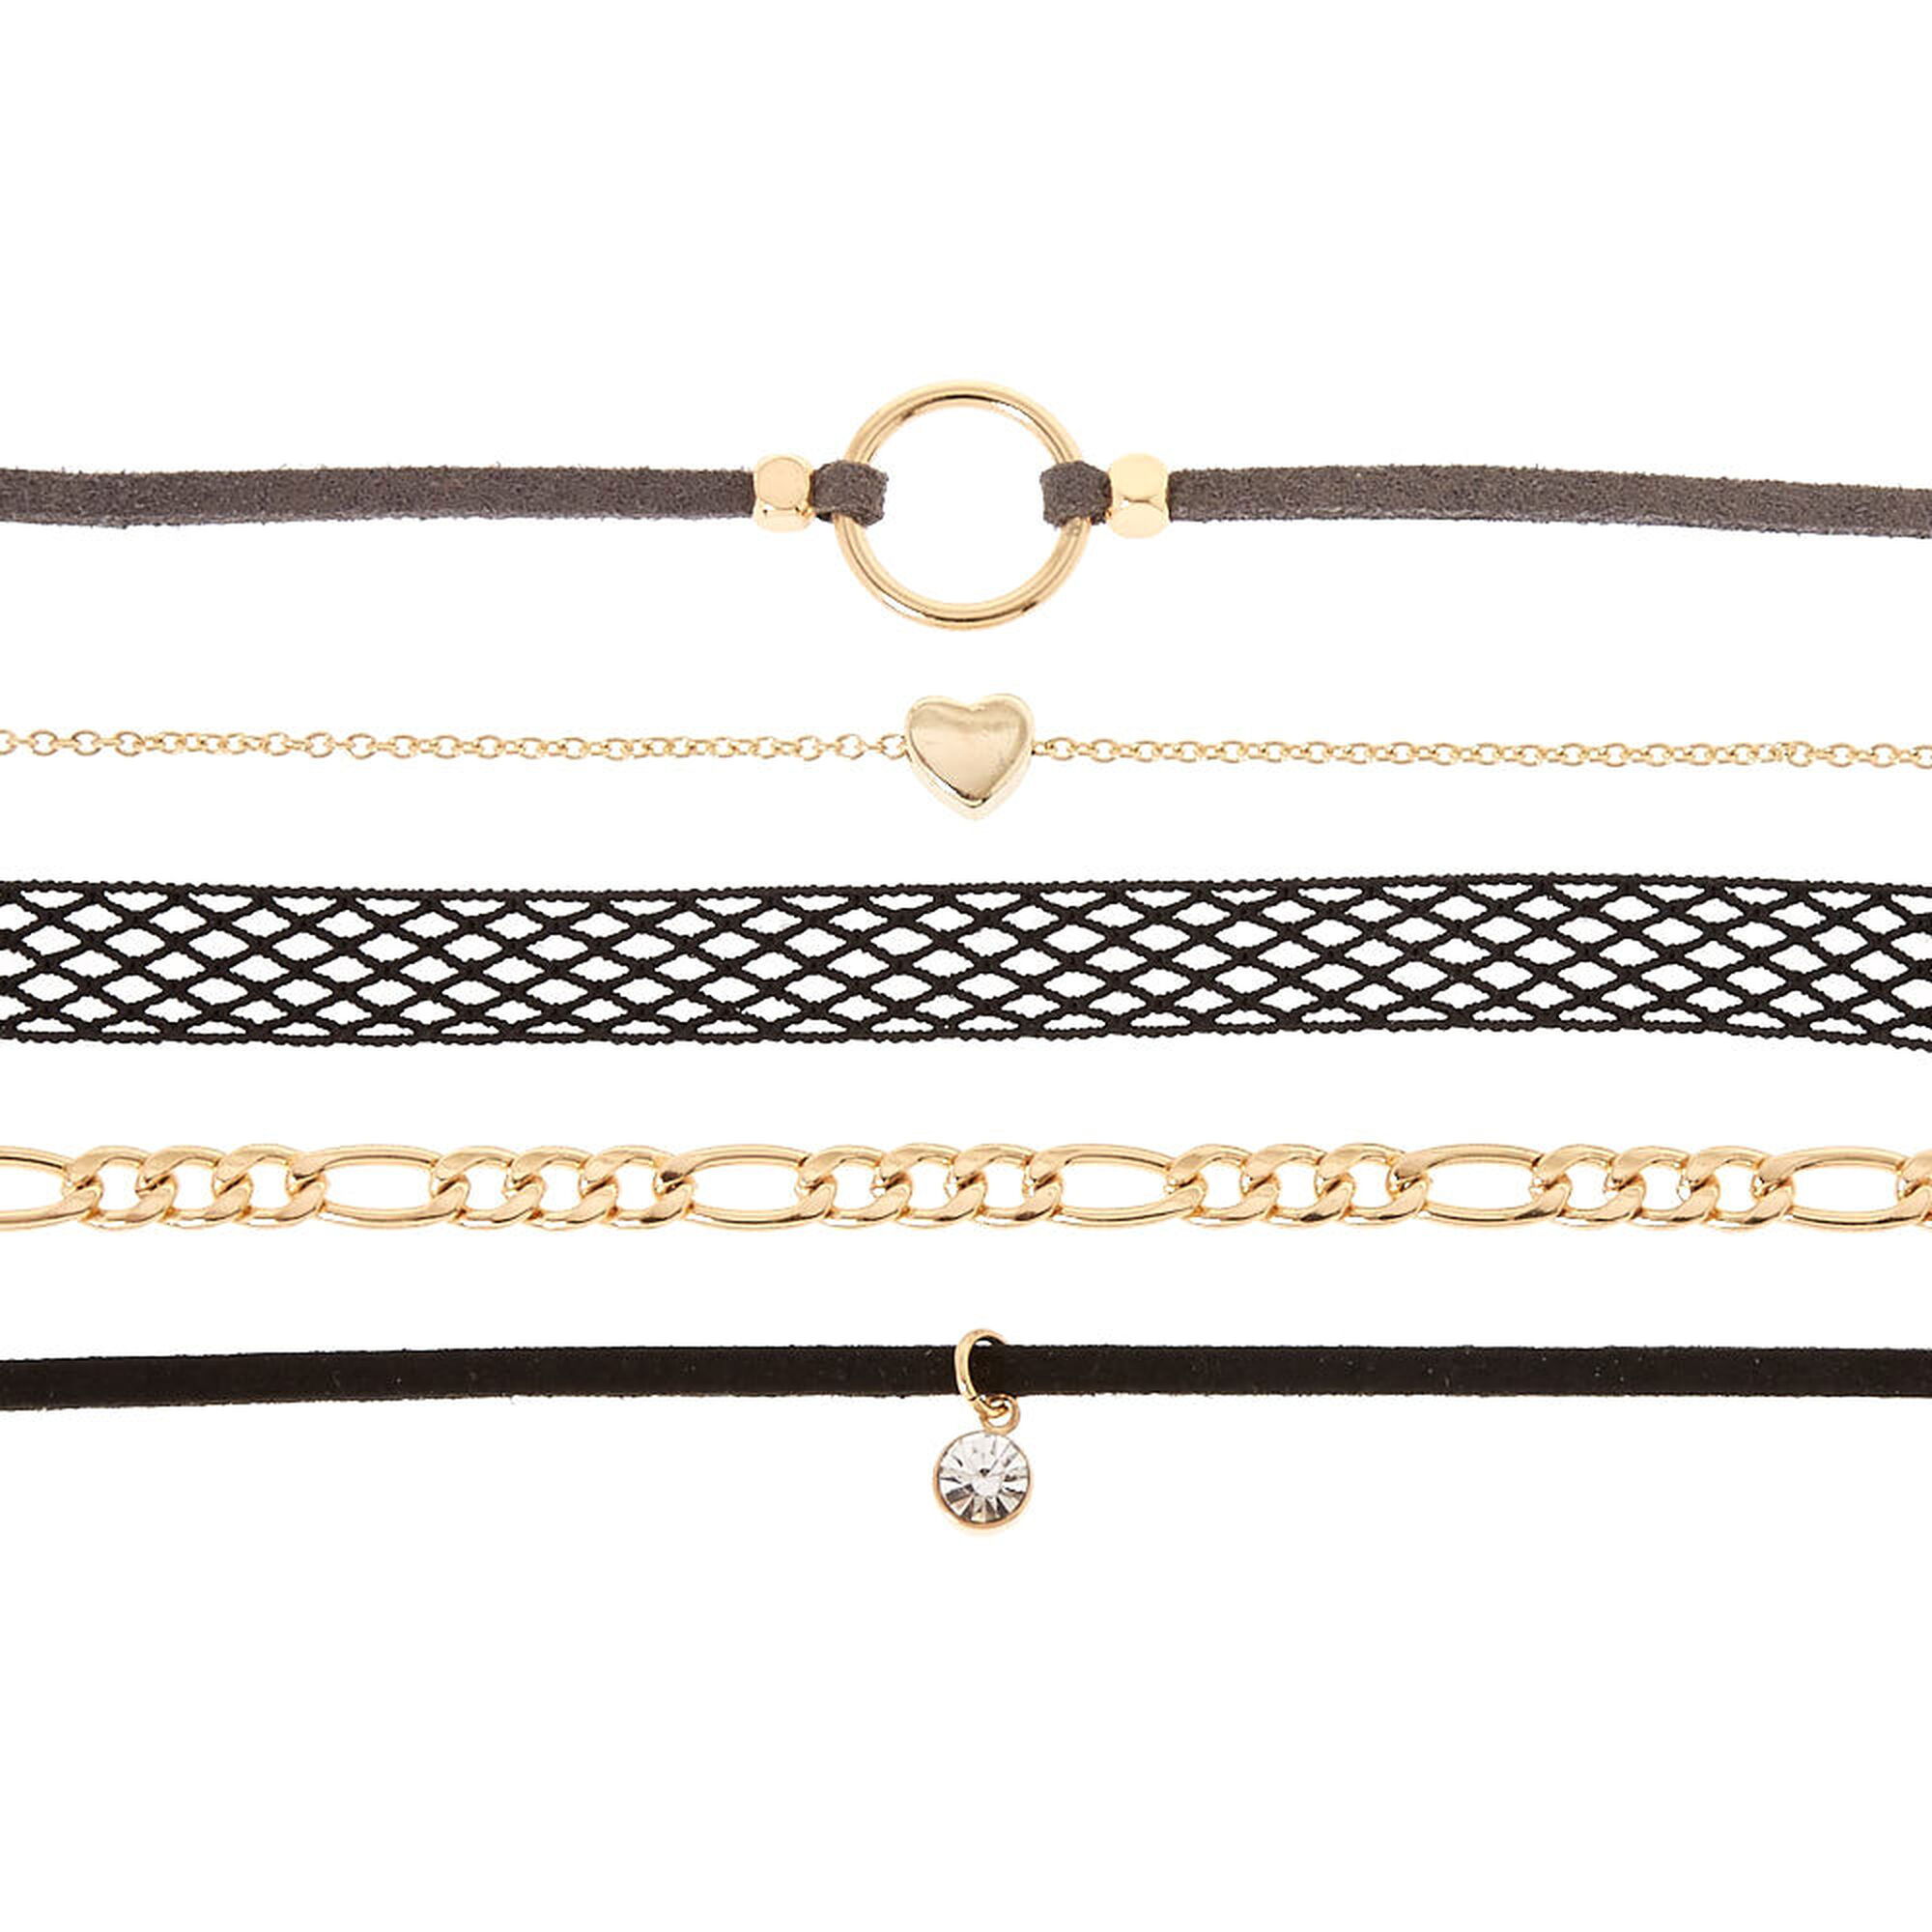 496cbc8759930 Gold Mixed Media Choker Necklaces - Black, 5 Pack